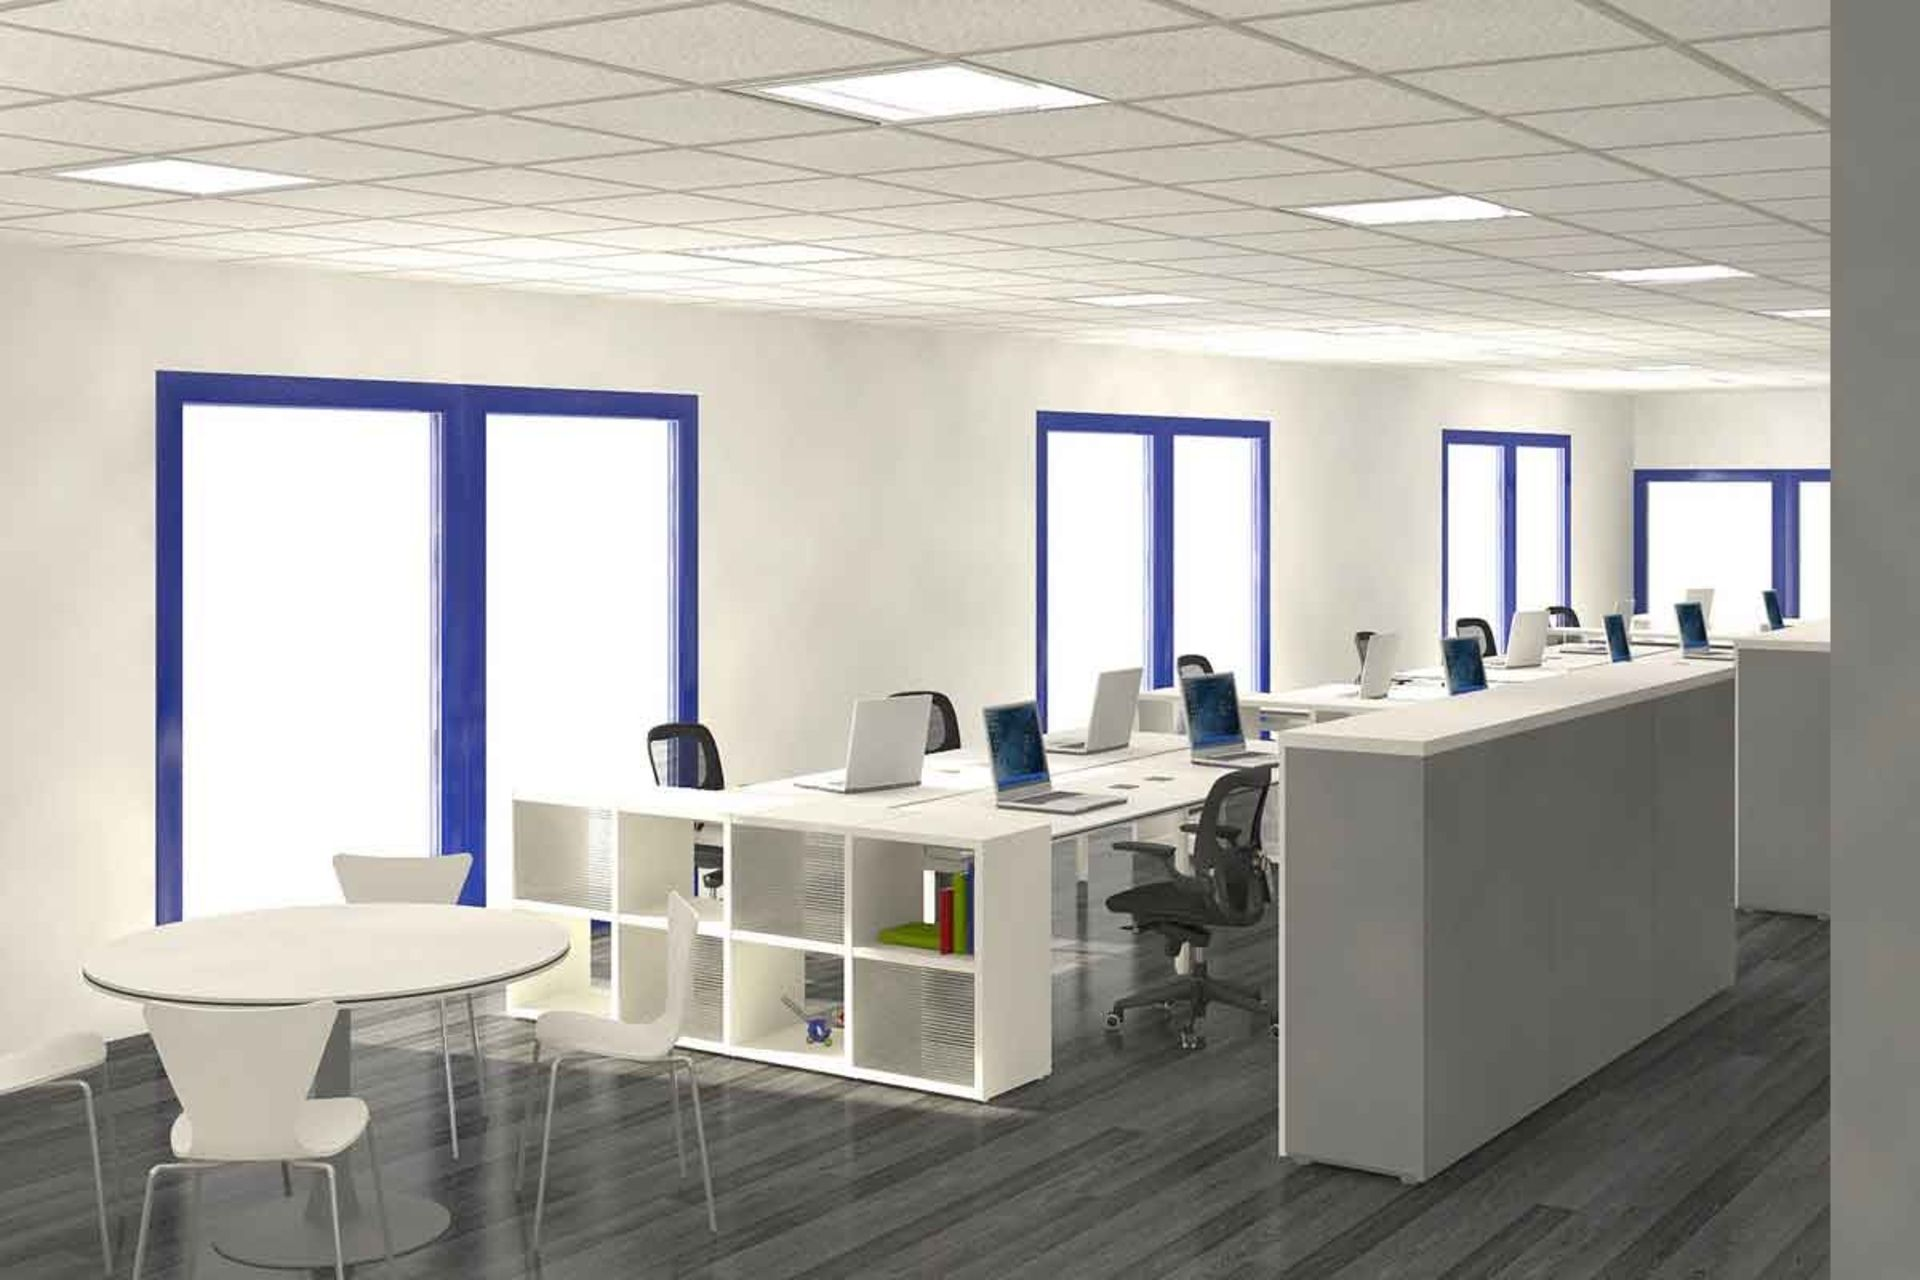 Corporate office decor using ikea furniture google for Office layout design ideas